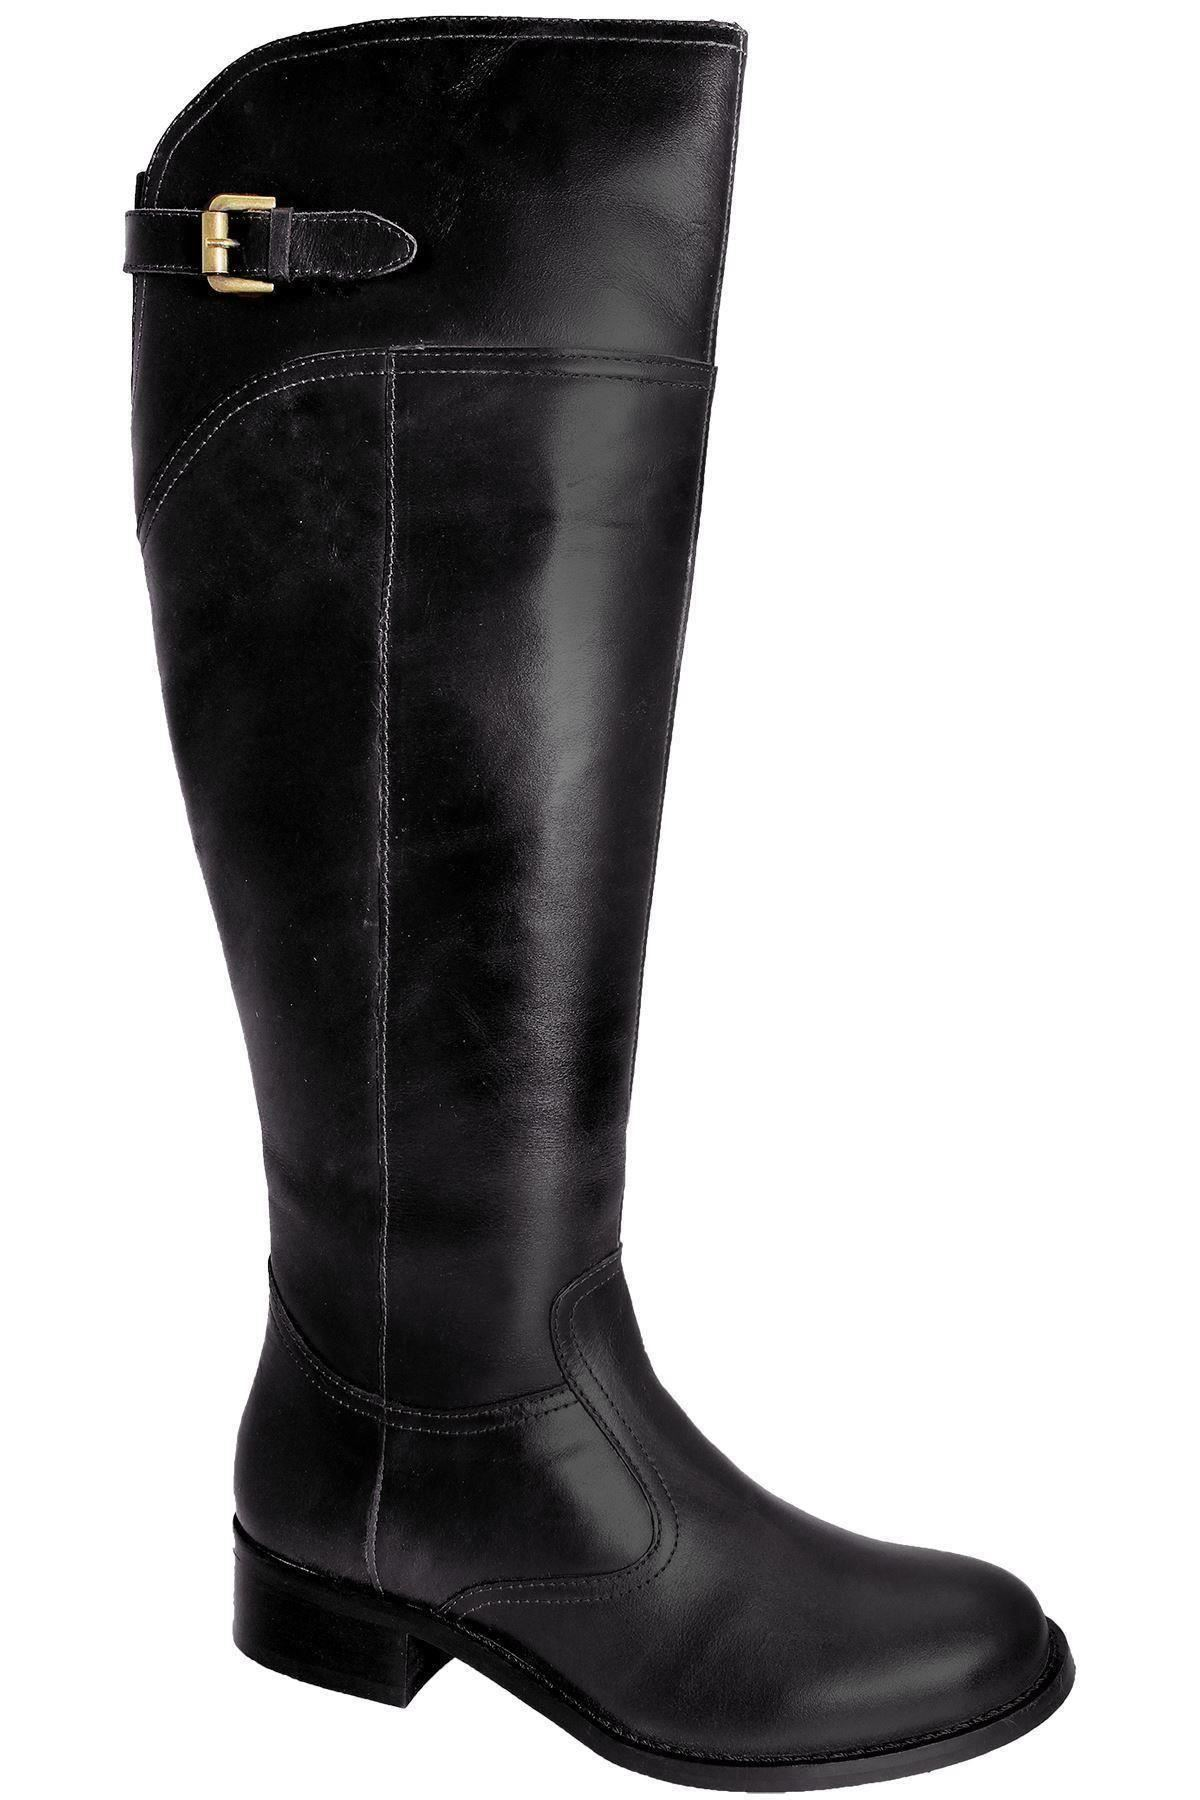 Will's Vegan Shoes Stivali Knee Length Boots Regular Fit